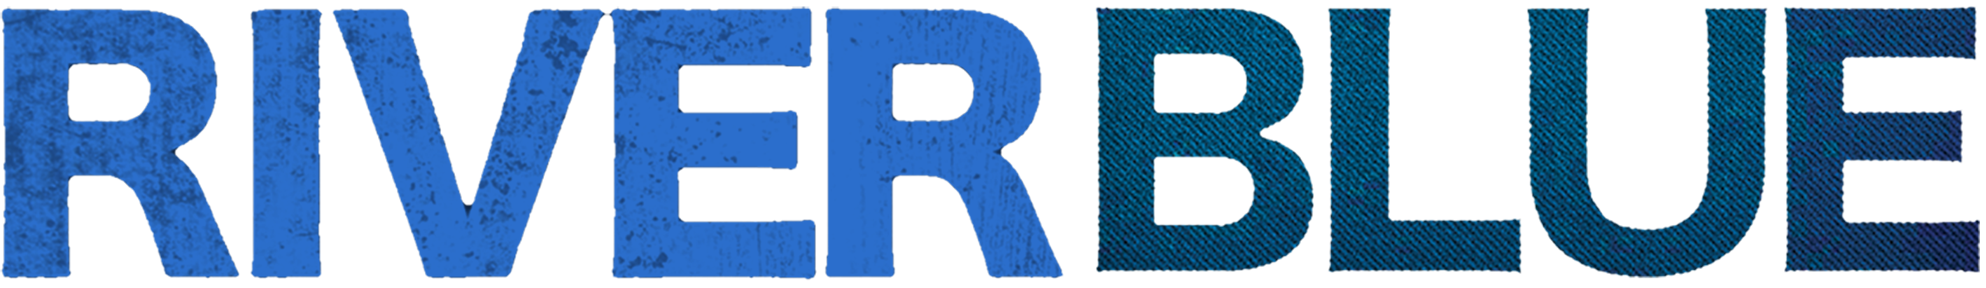 RiverBlue-Logo.png